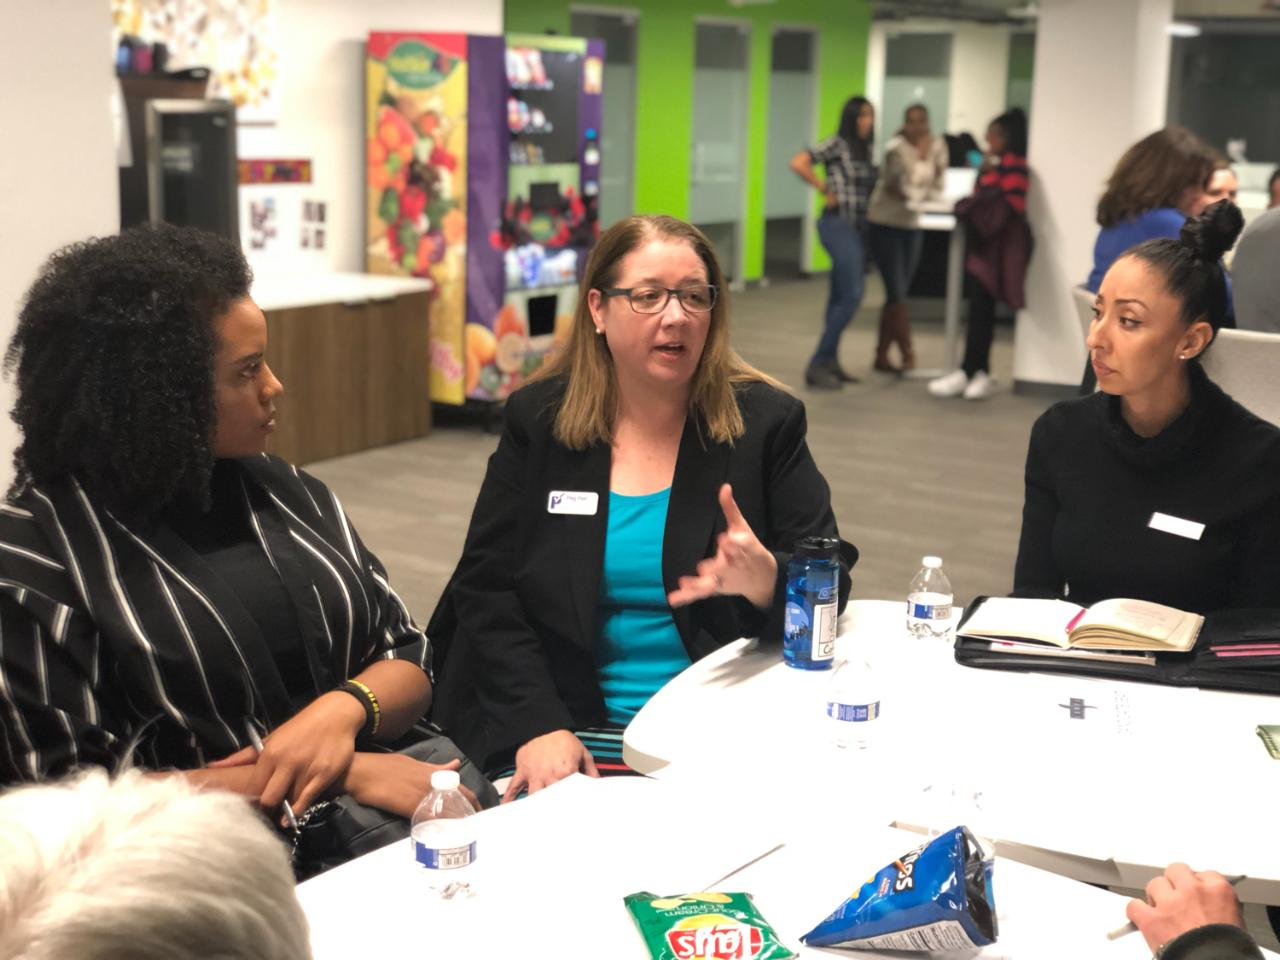 I've spent my career pushing our government to be open and accountable to ALL people, not just the well-connected. Now, I want to continue to fight for you as Denver Clerk . -